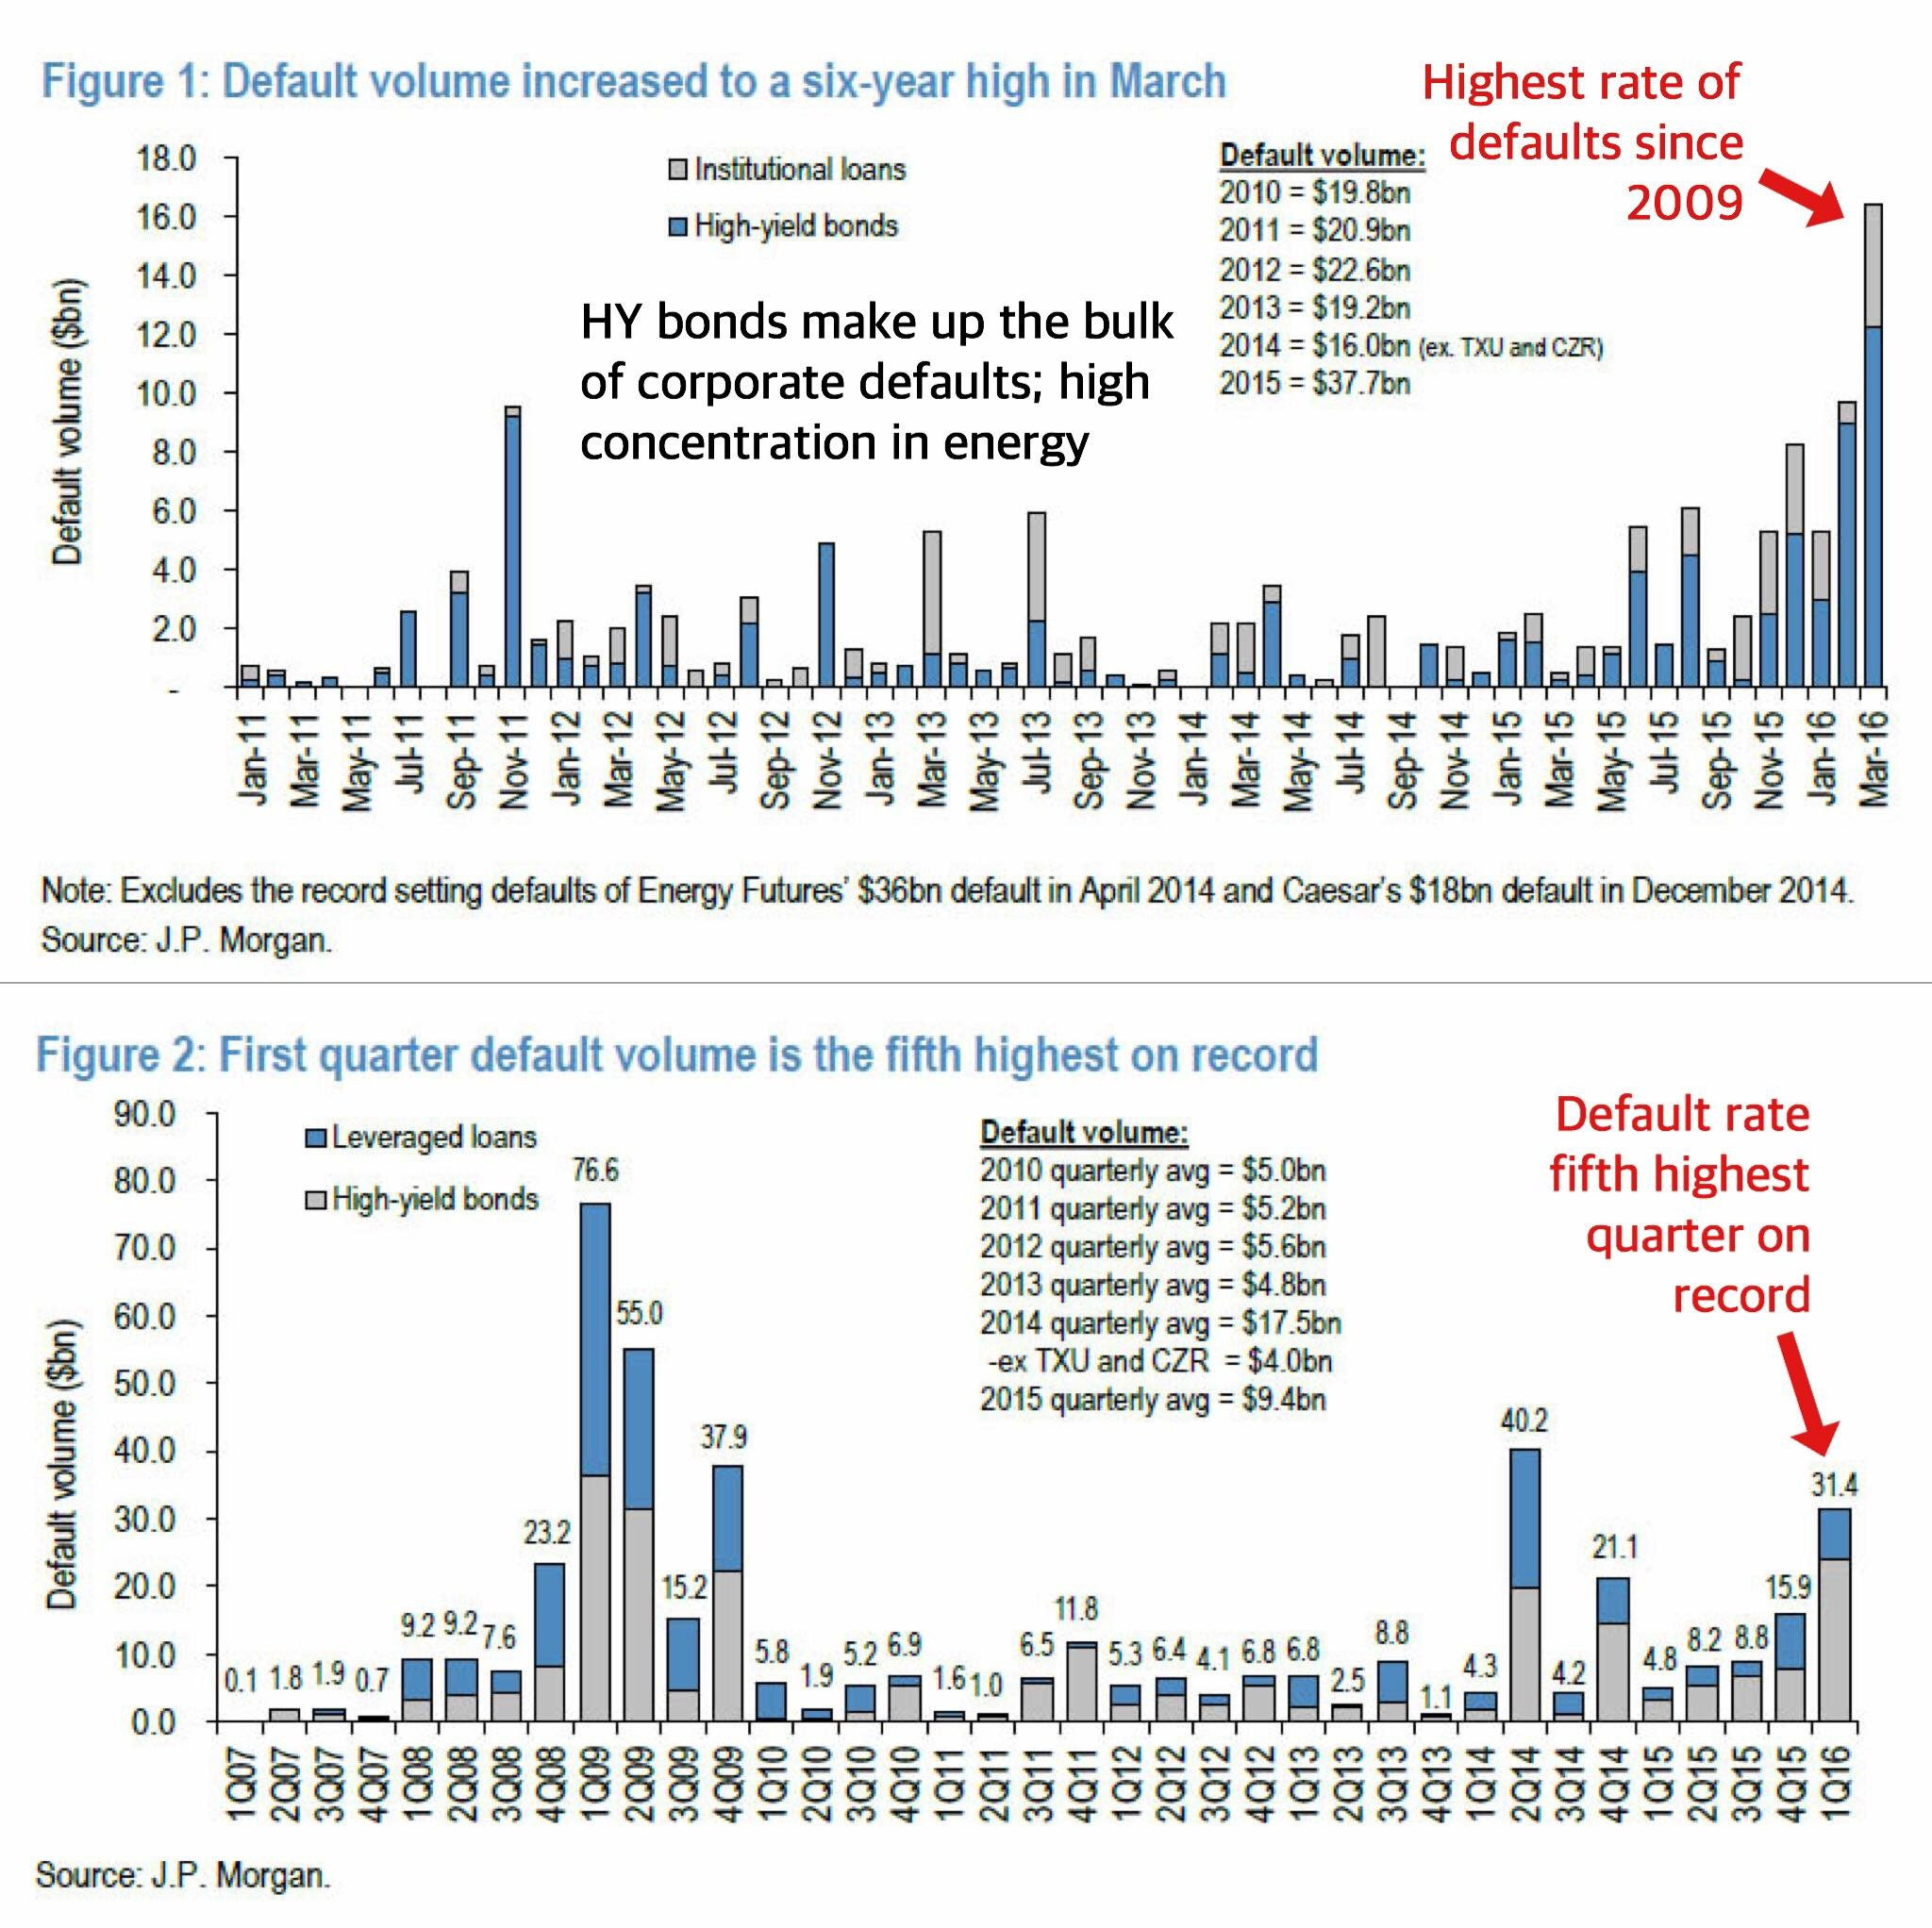 """""""The U.S. corporate default situation is not something you want to turn a blind eye to. Default volumes in March reached a staggering 6-year high, challenging that of 2009's Lehman peak. While a majority of the defaults are the result of energy firms going bust, this is spreading to related sectors such as materials. One can only imagine the poignant picture in other developed commodity-driven economies such as Canada where we presume the situation is multiples worse.""""    Business Of Finance on Facebook, 15 April 2016"""